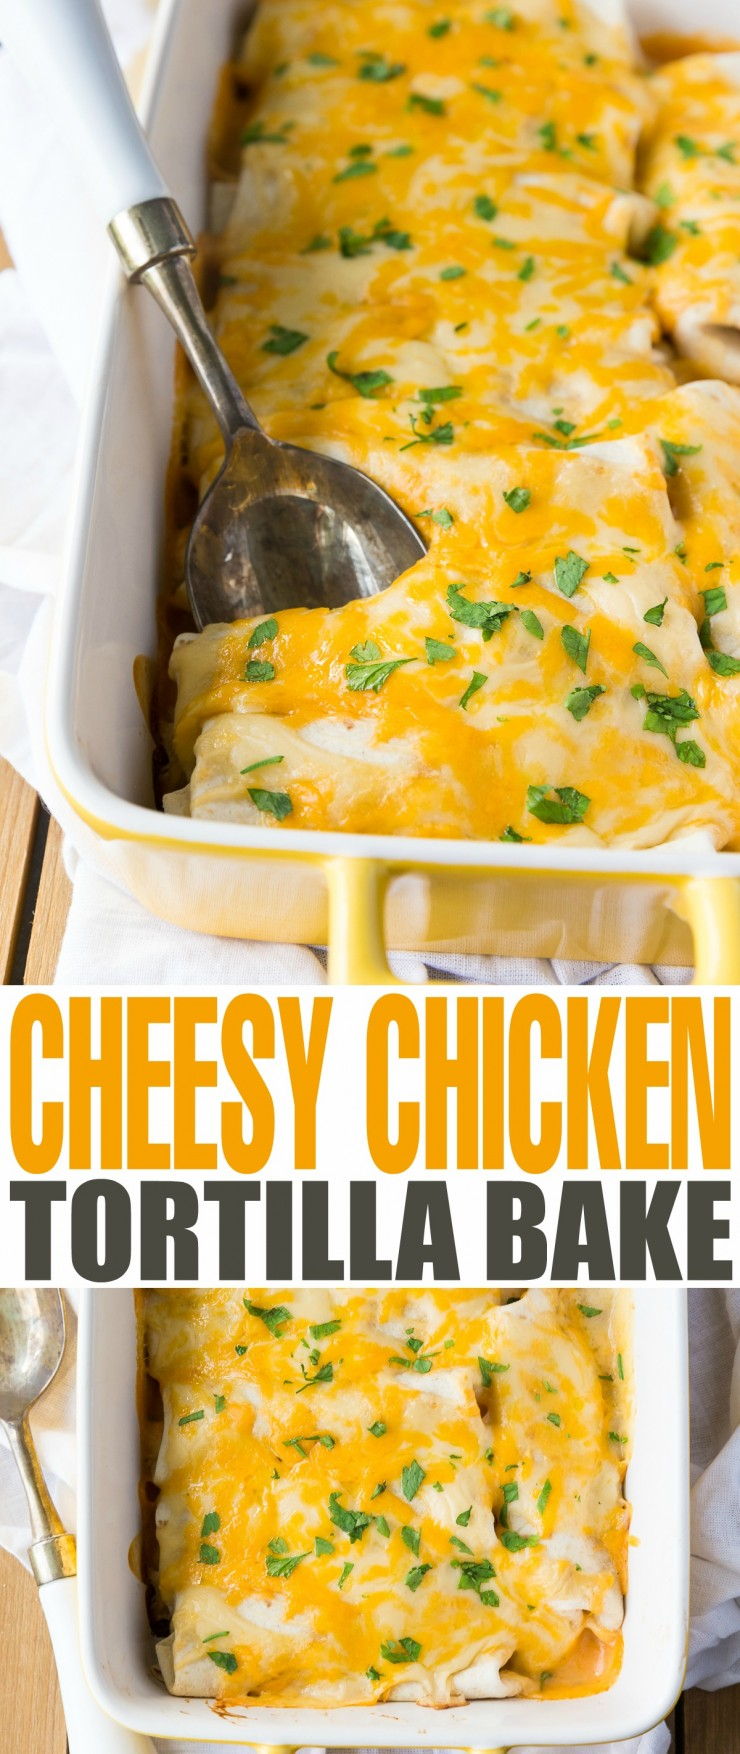 This is a delicious recipe my family has made for years.  An easy dinner filled with delicious cheese sauce and chicken.  The best part is that it is inexpensive and can be made ahead of time and reheated.  Plus, it freezes well too!